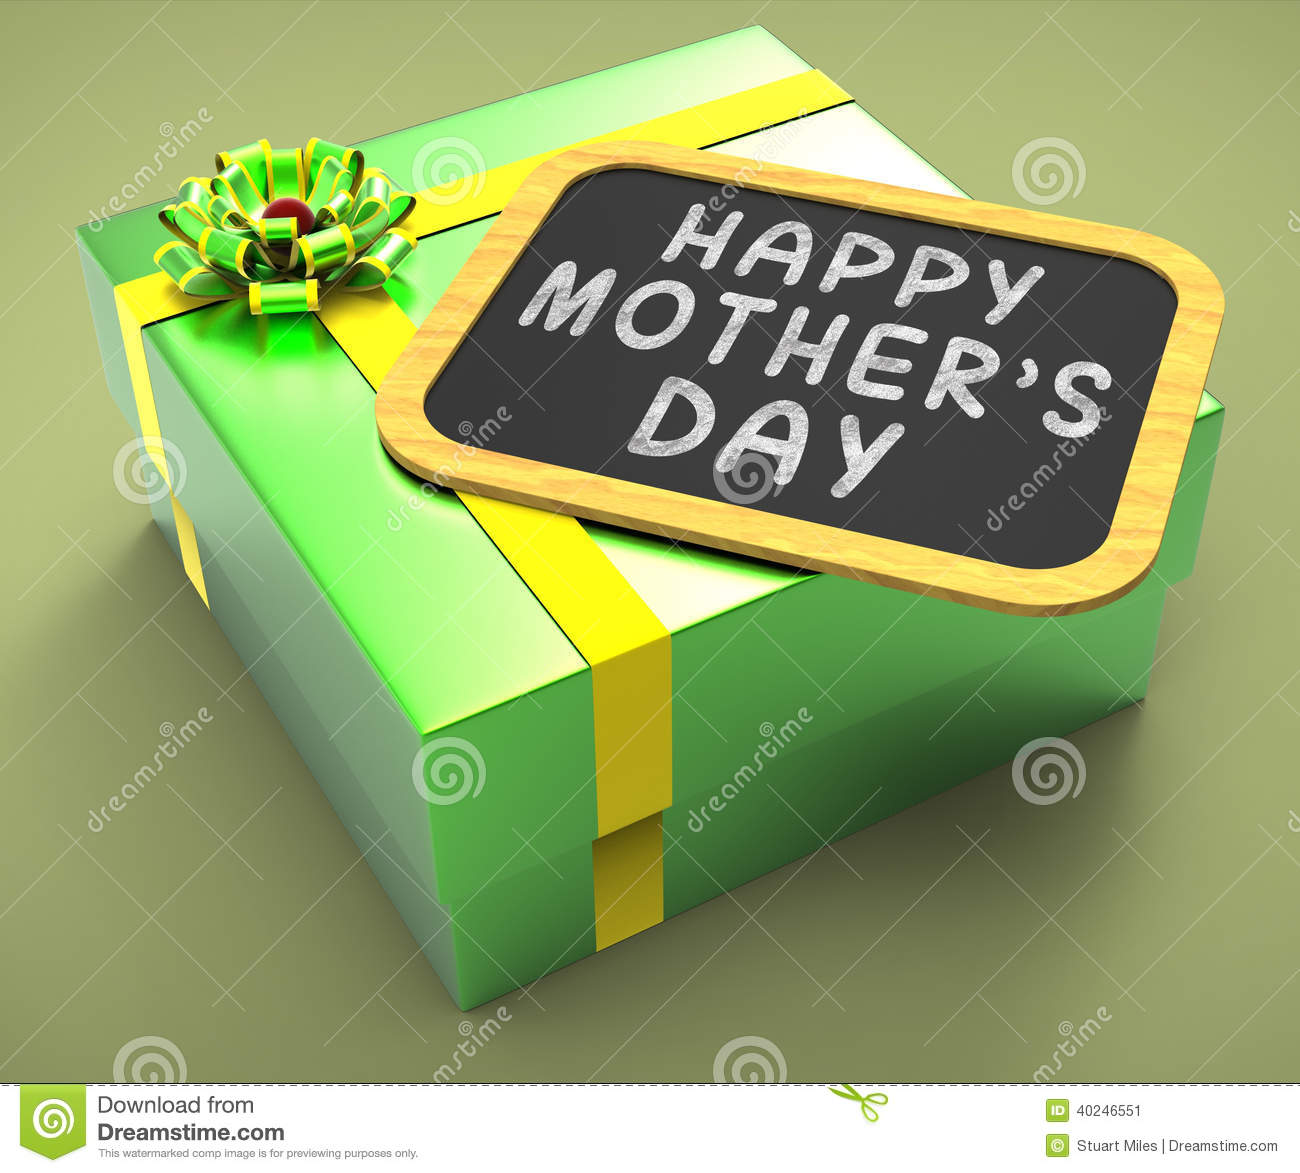 Happy mothers day present means motherhood stock illustration happy mothers day present means motherhood m4hsunfo